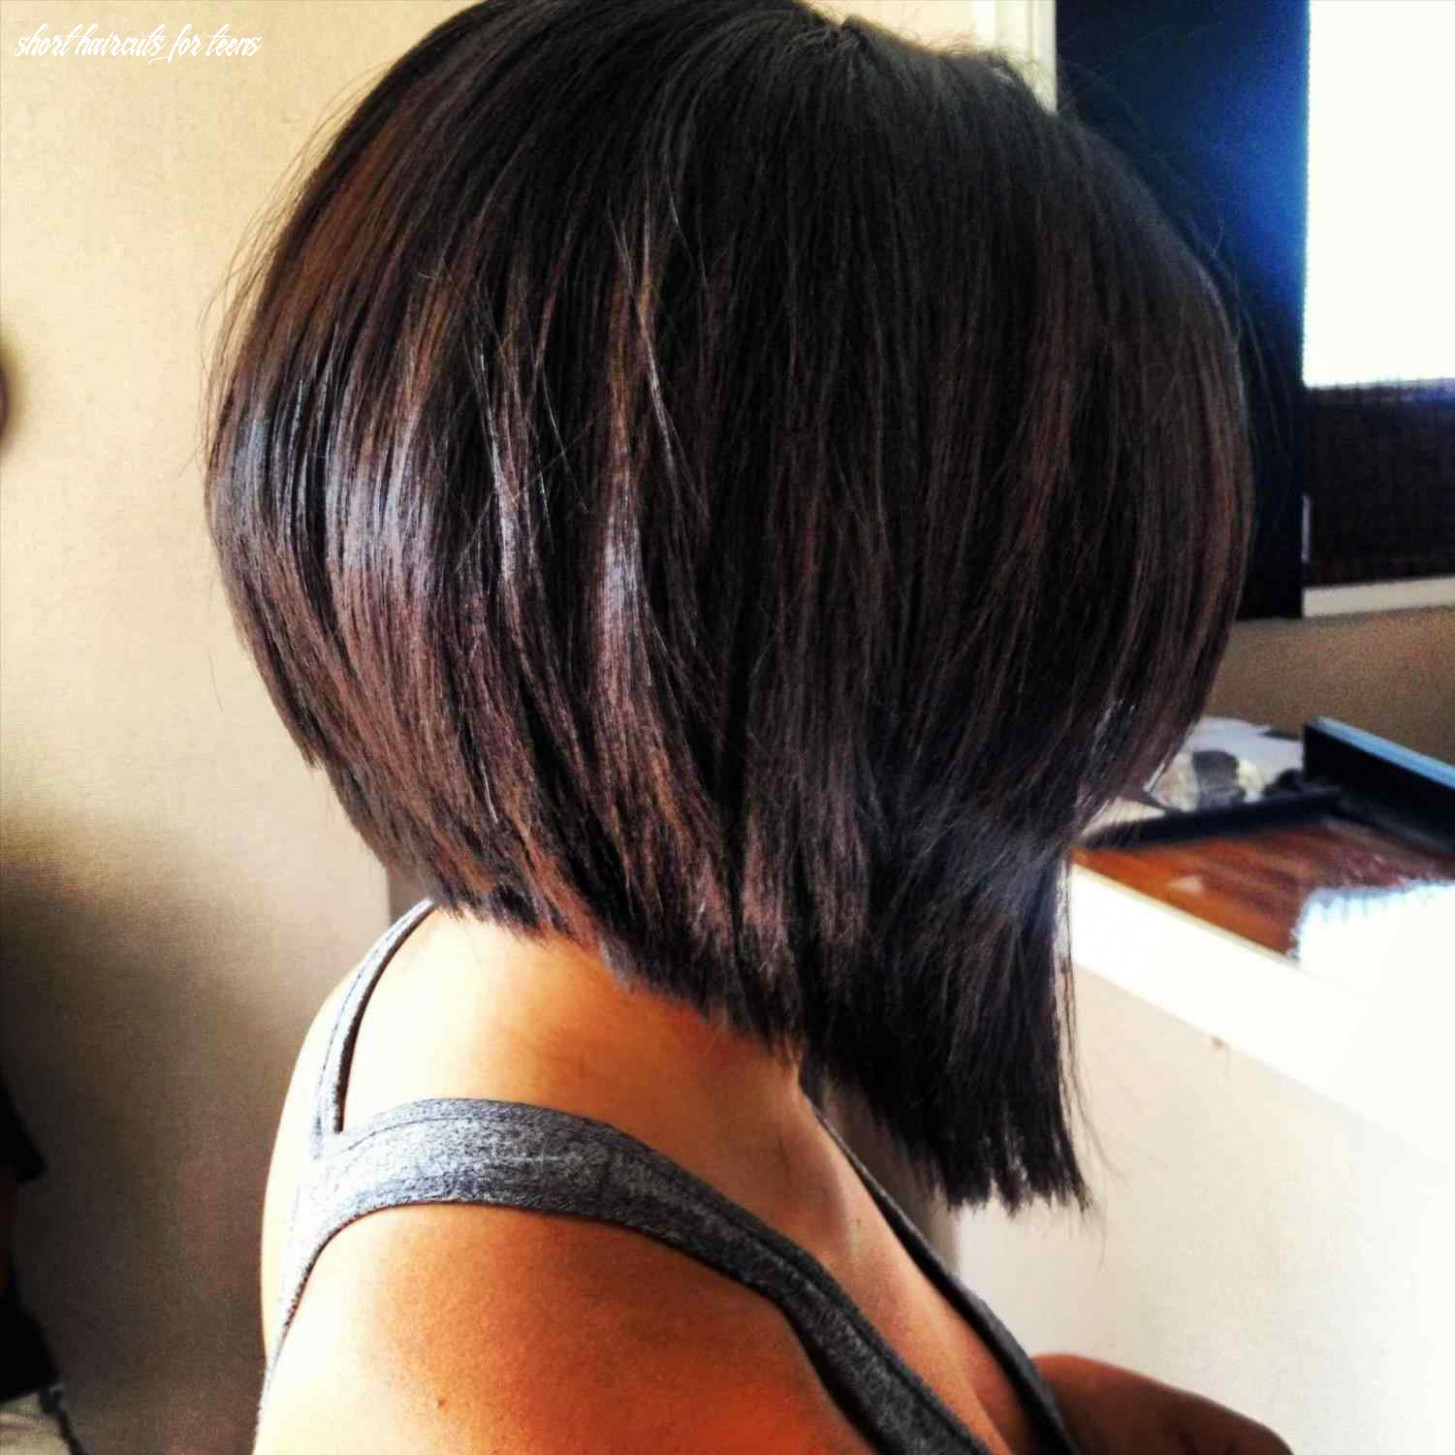 Latest 11 short hairstyles for teenage girls | short haircuts for